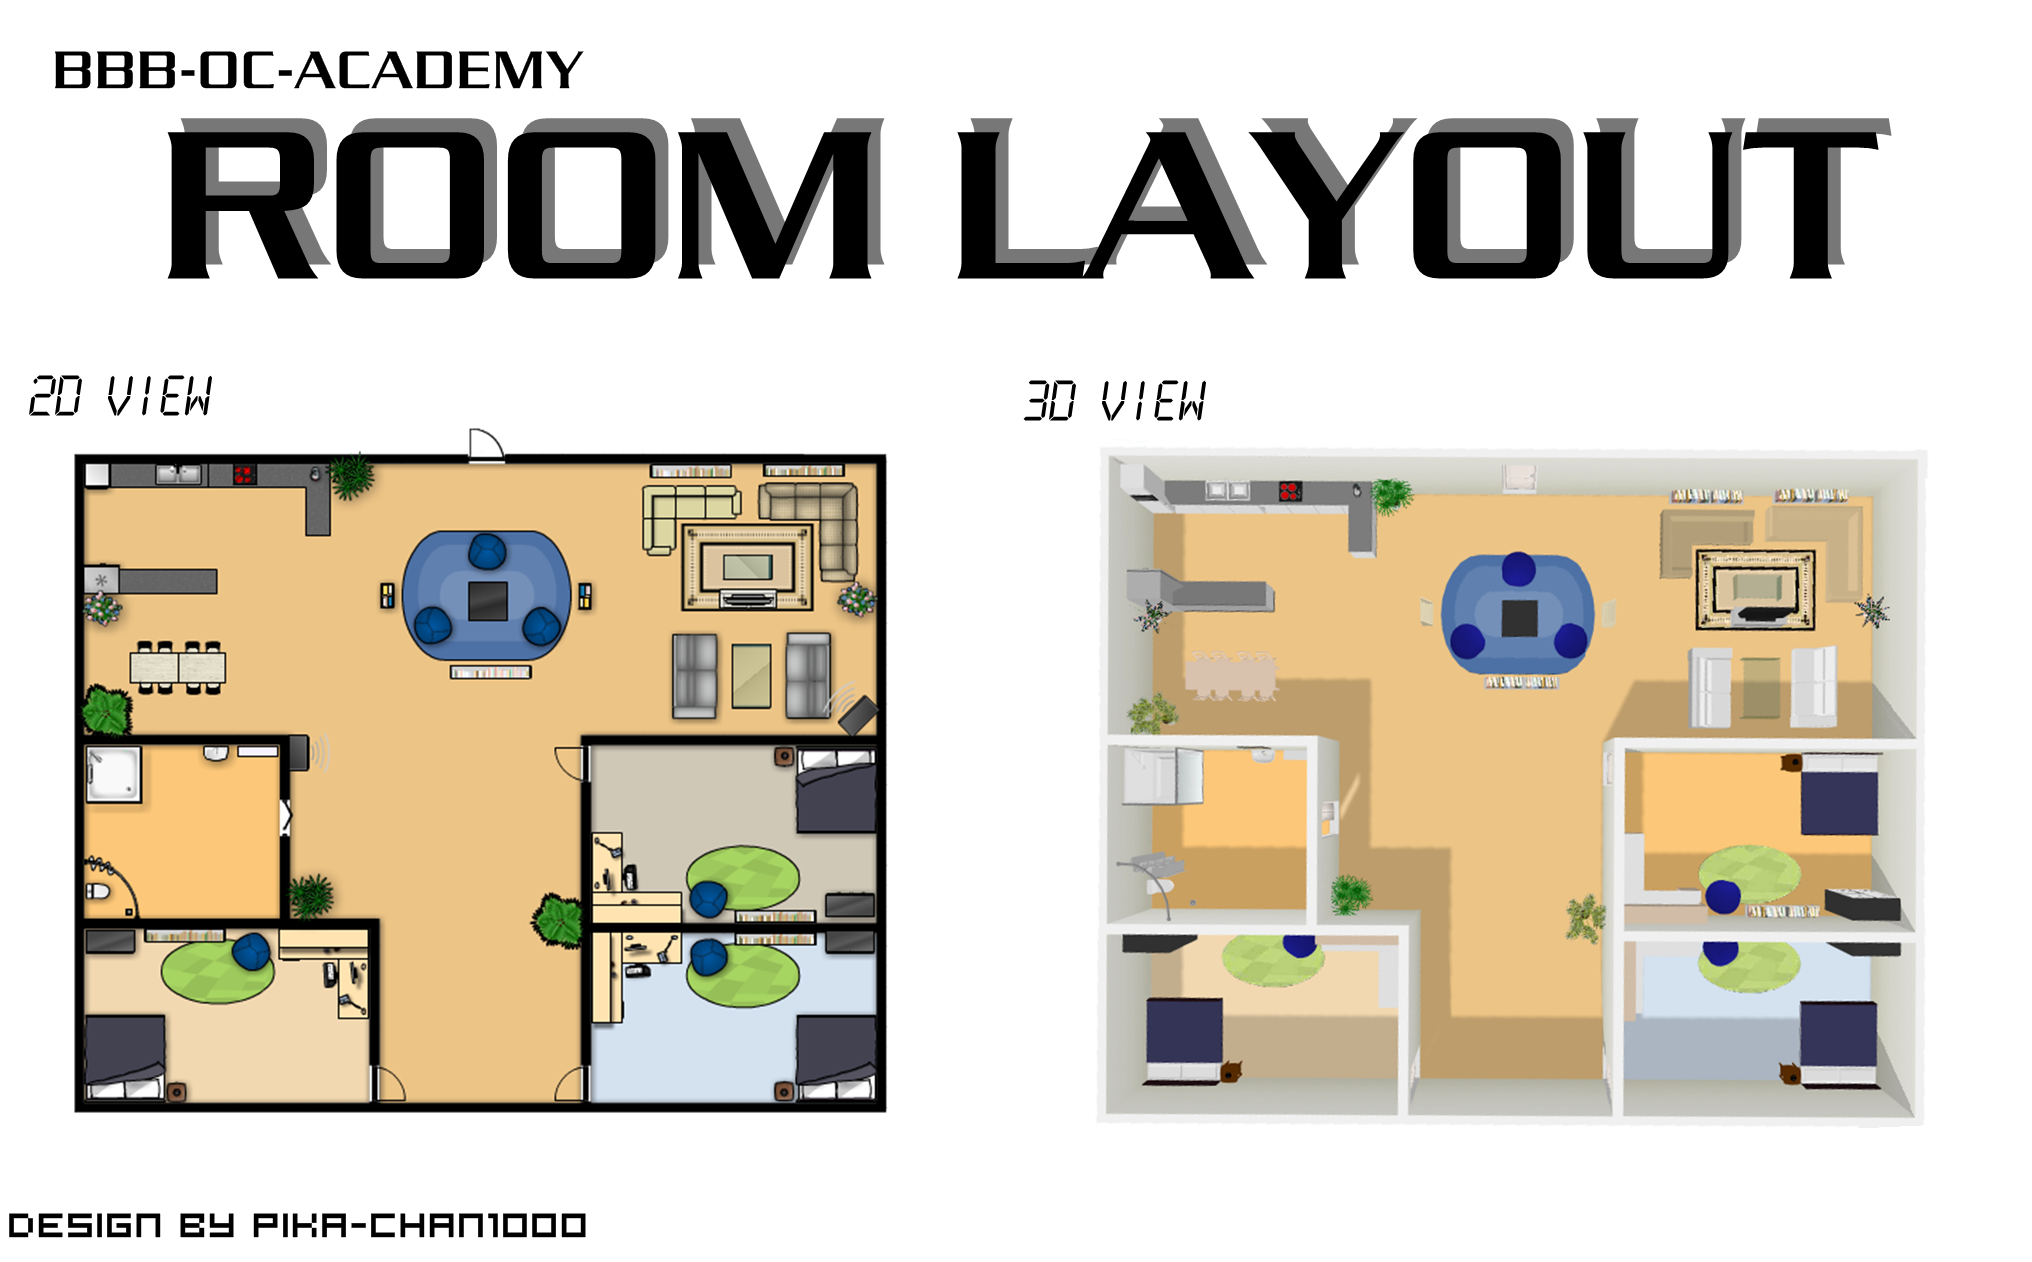 Room layout 2d and 3d by nuazka on deviantart Plan your room layout free